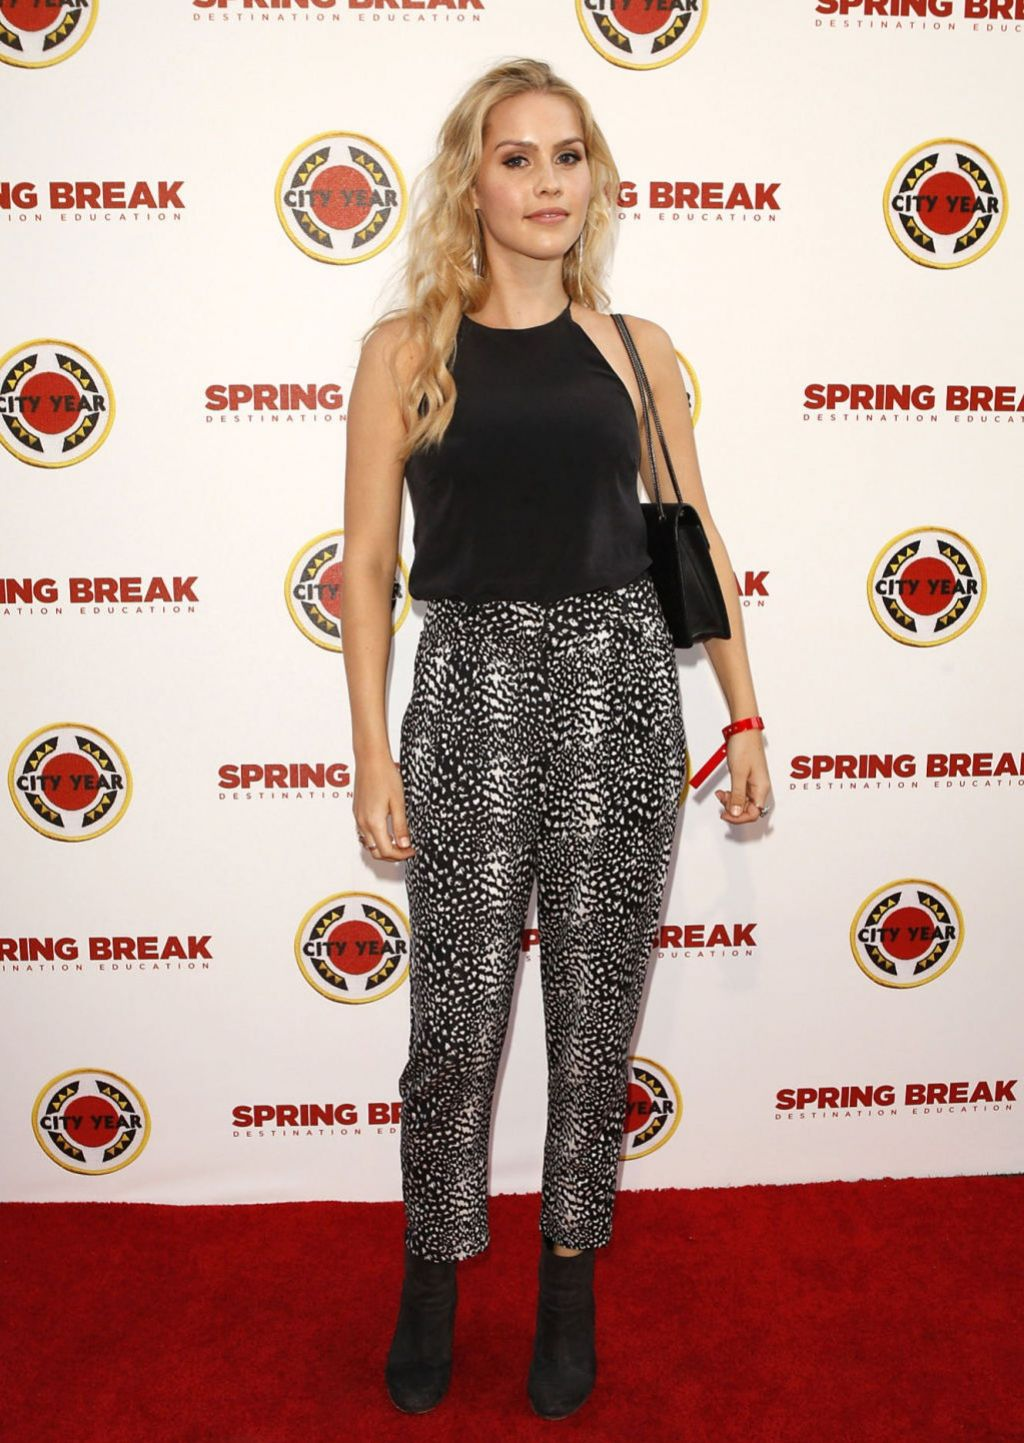 Claire Holt - City Year Spring Break Fundraiser (2014) in Los Angeles